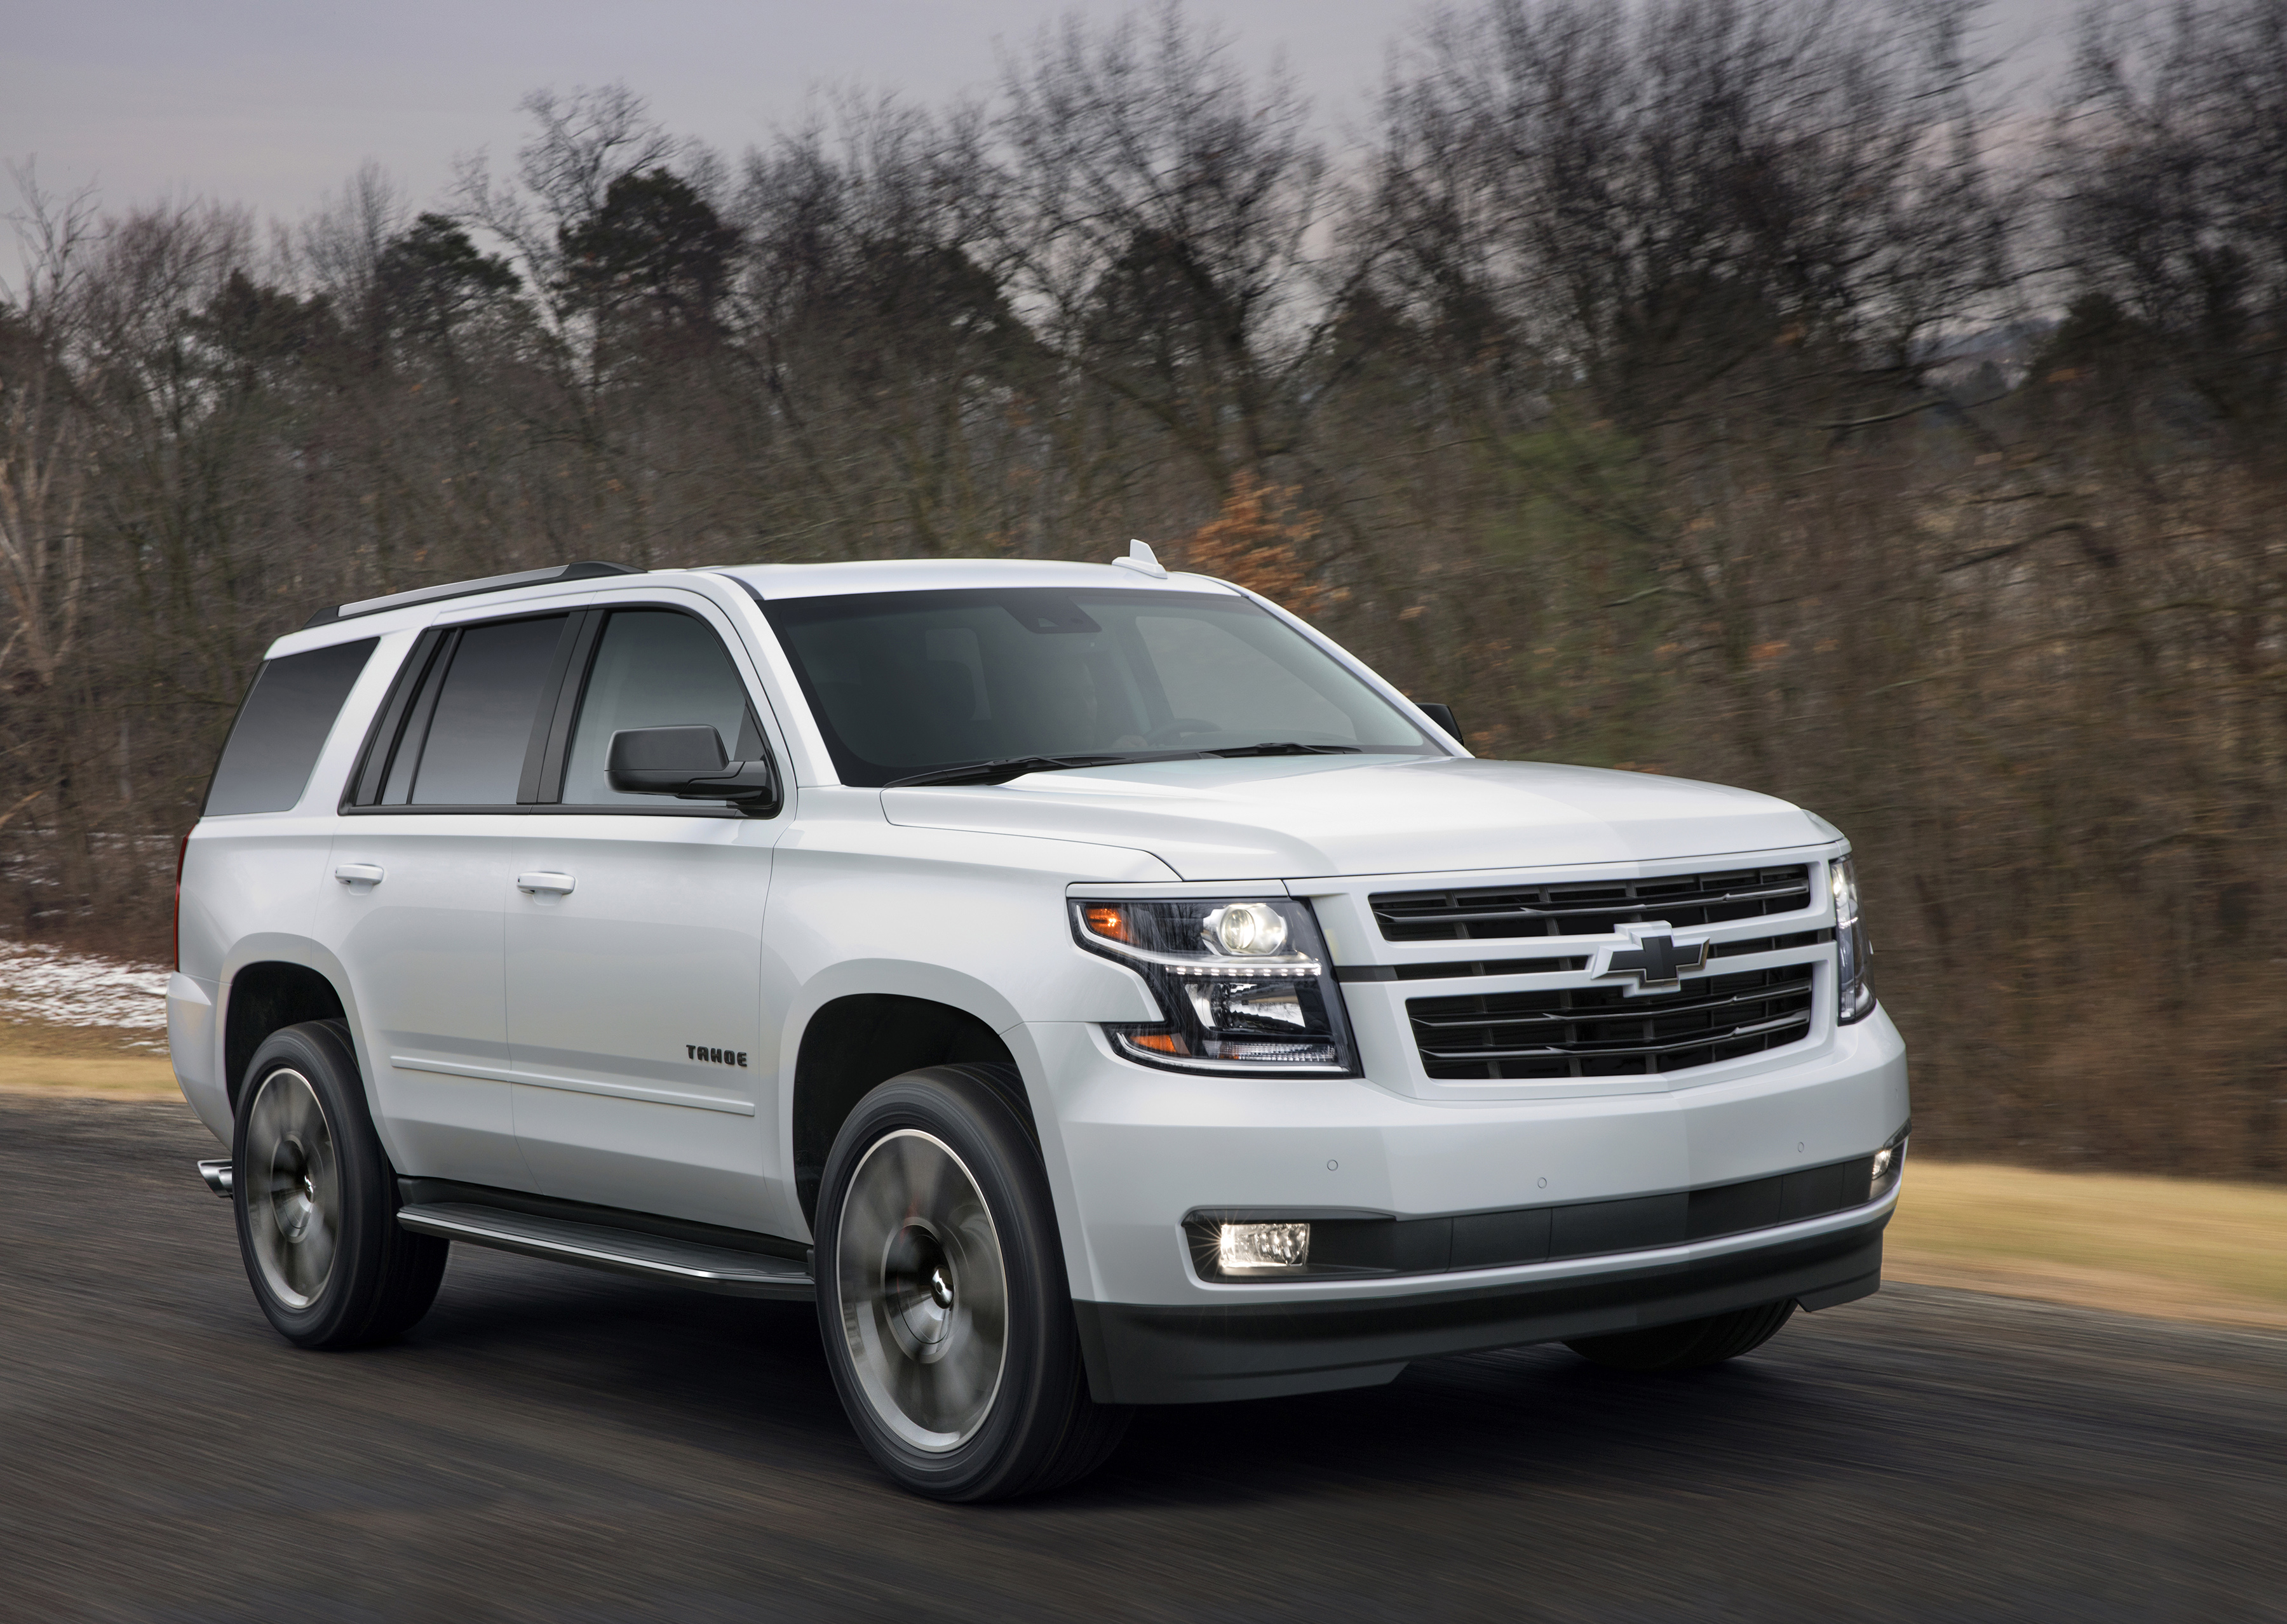 2018 chevrolet tahoe rst 2018 chevrolet tahoe rst